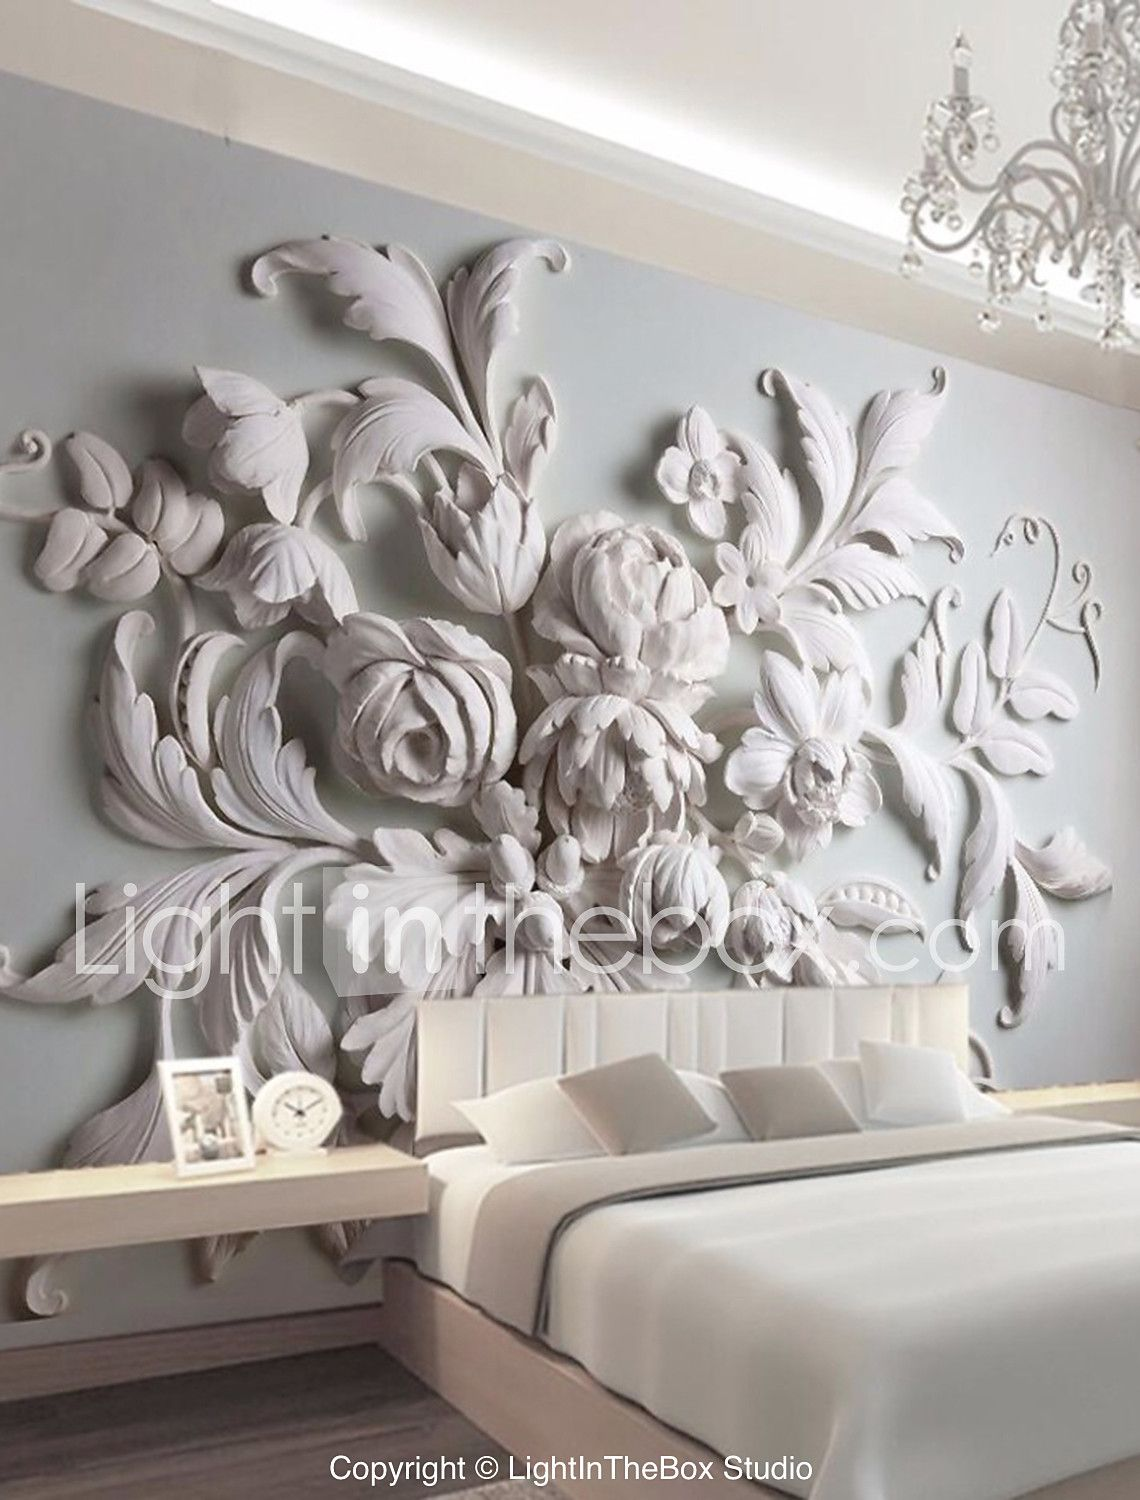 Mural Canvas Wall Covering Adhesive Required 3d 2021 Us 83 99 Wall Covering Decor Guide Home Decor